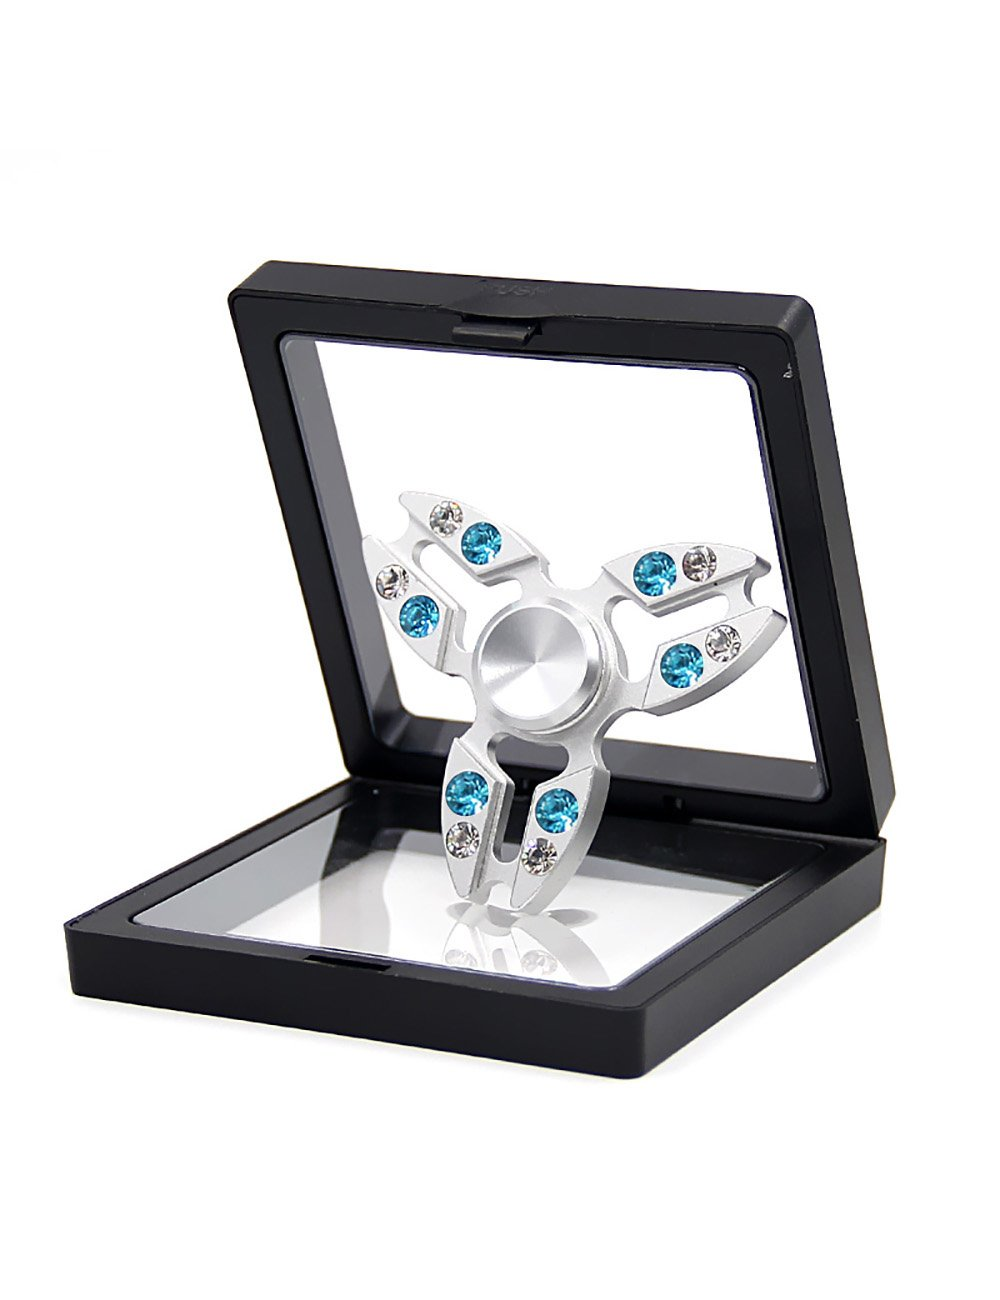 Callancity Crystal Fidget Finger Spinner-Luxury Handwork Shiny Colorful Diamond Crab Tri Fidget Hand Finger Toy Spinner for ADHD Anxiety